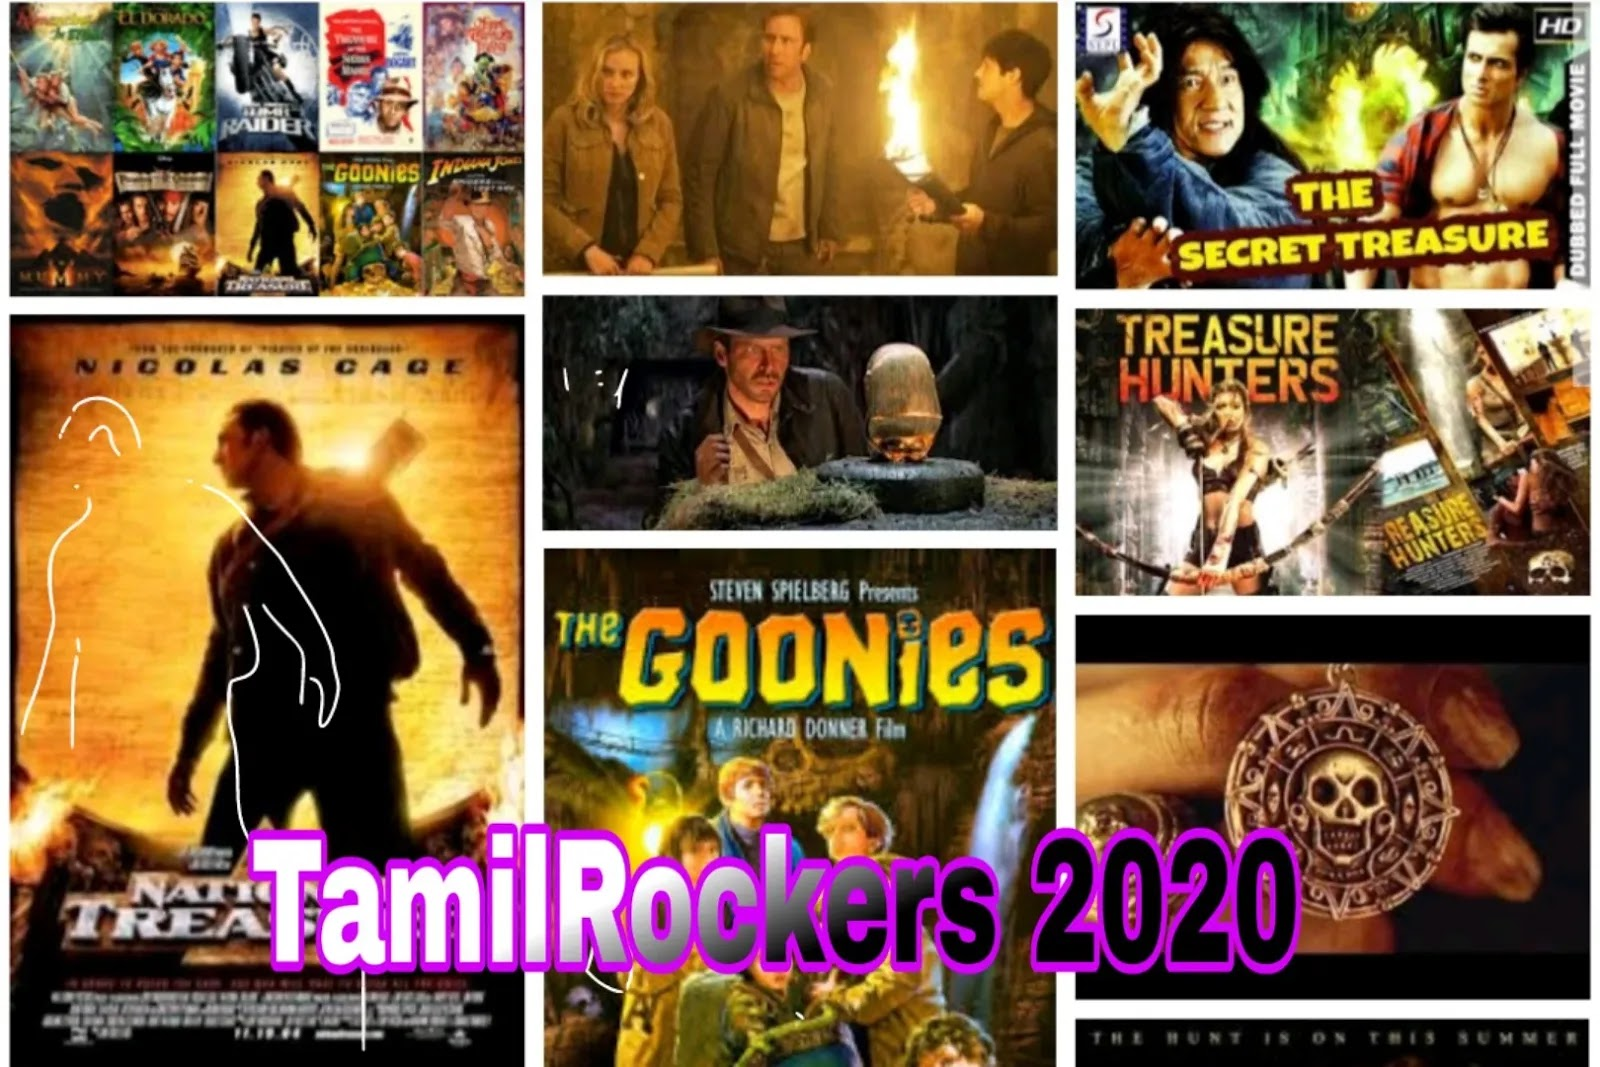 Tamilrockers Forum New Link 2020